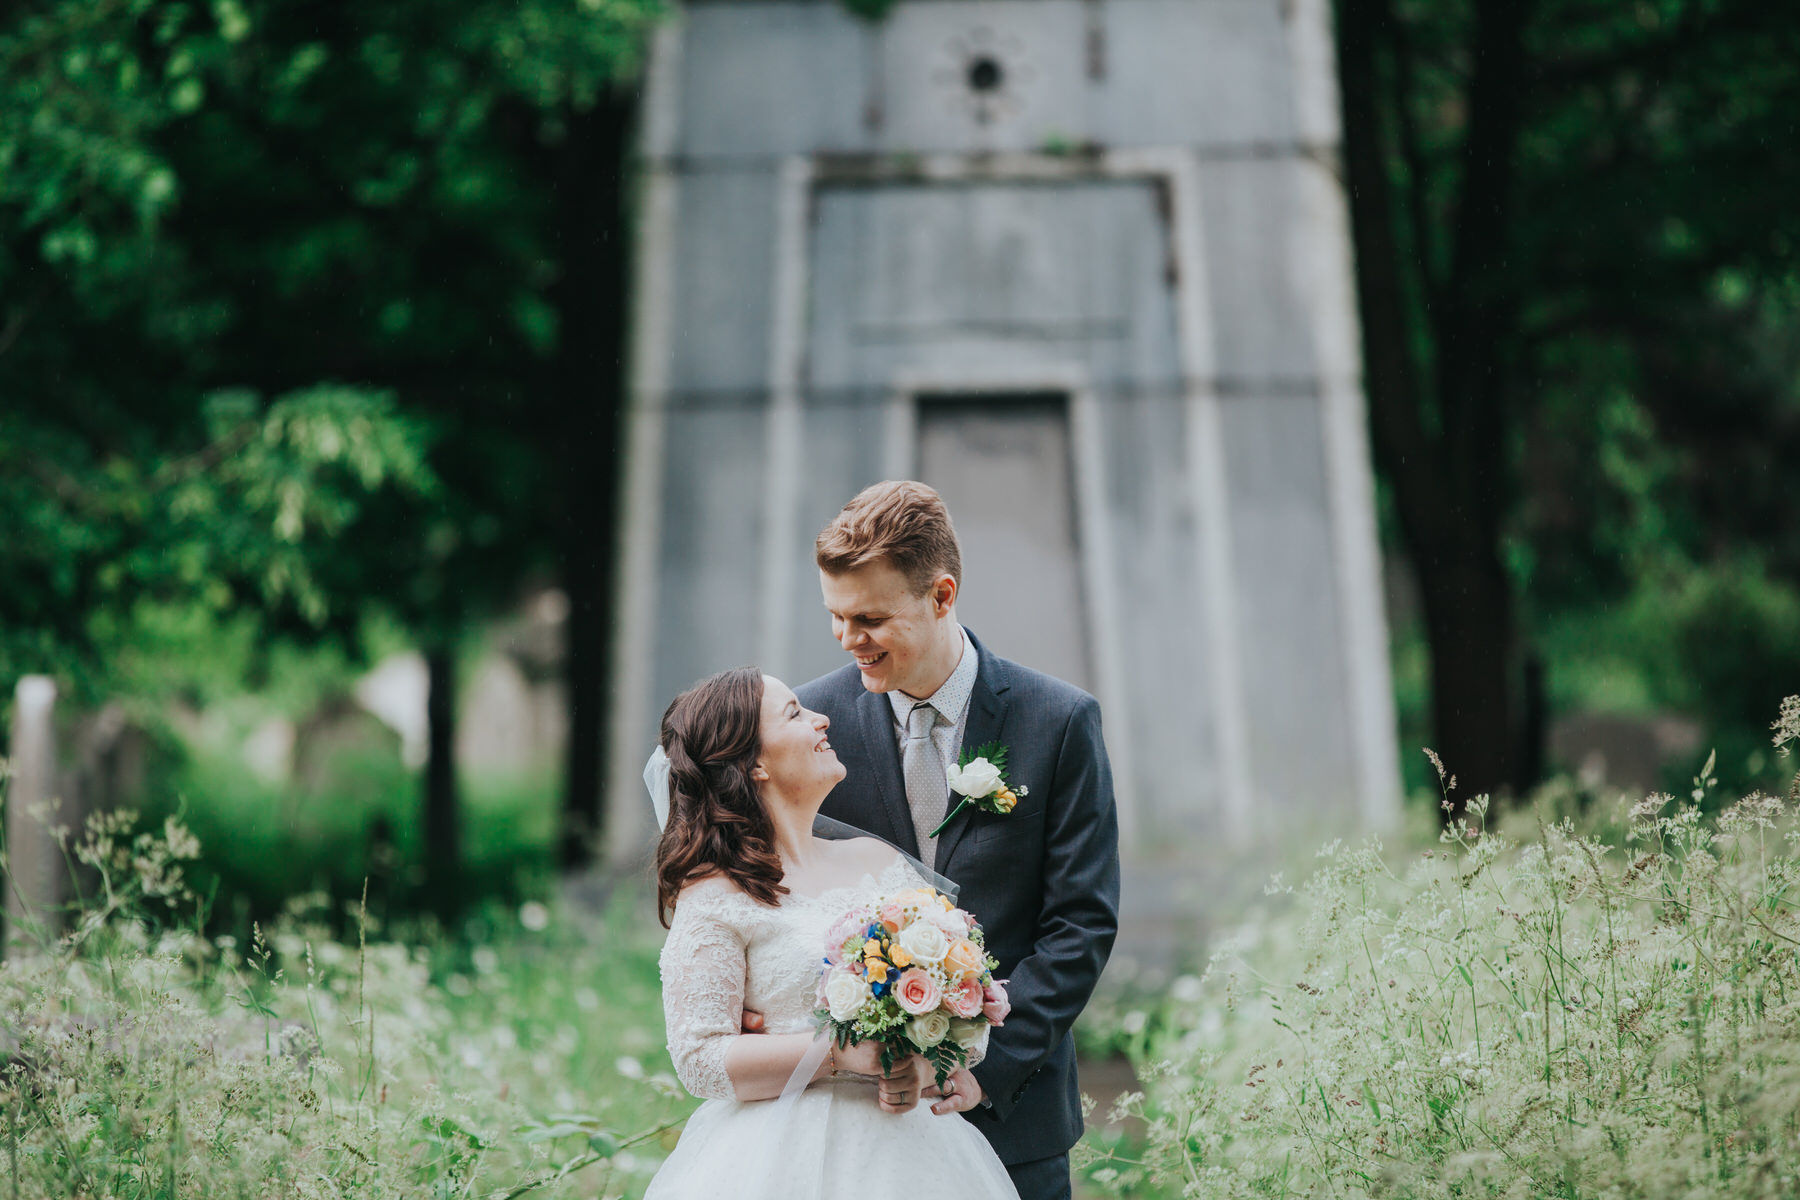 183-groom bride wedding portraits Brompton Cemetery.jpg